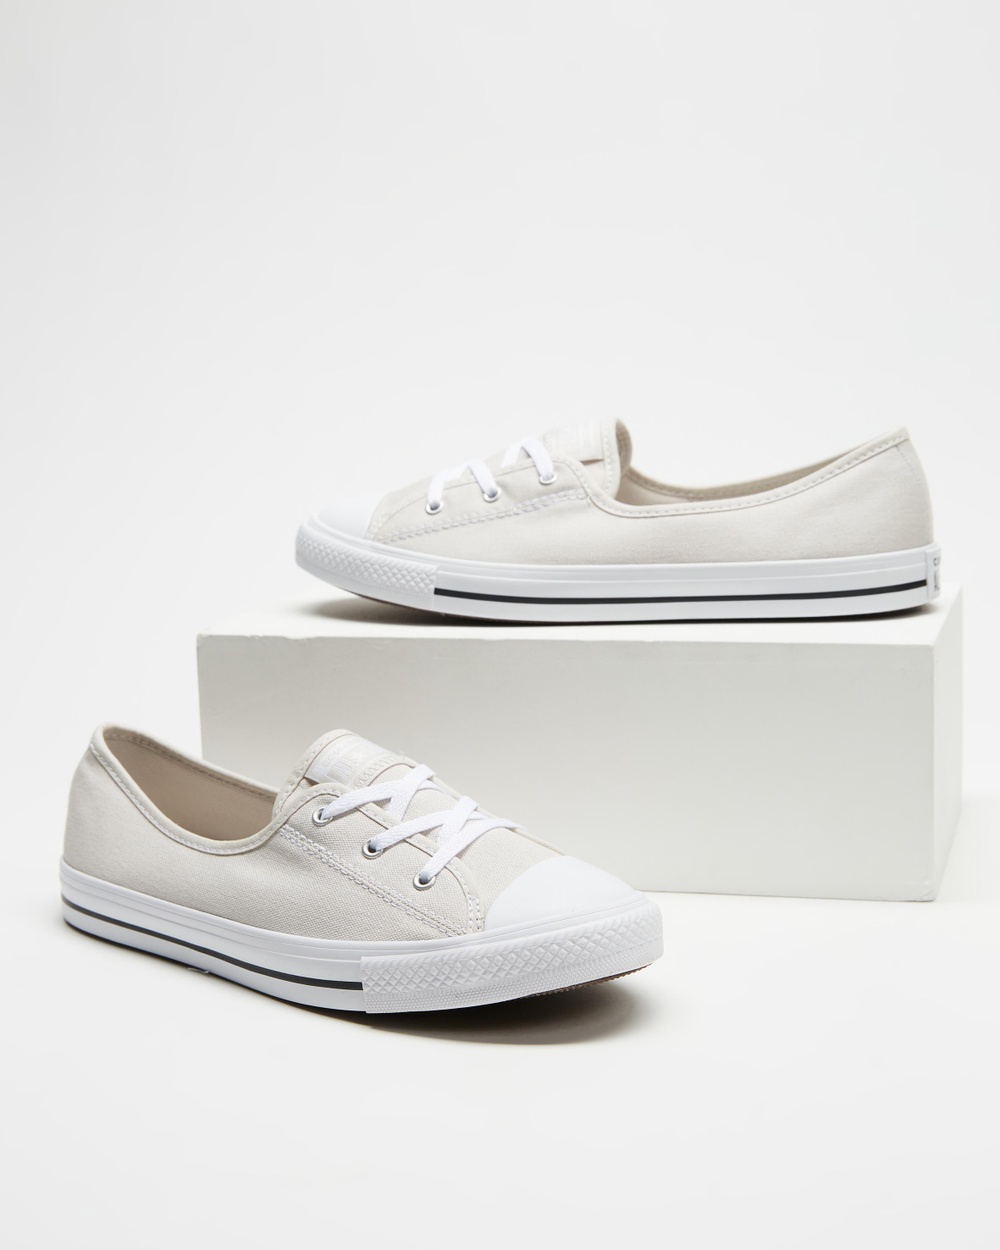 Converse Chuck Taylor All Star Ballet Lace Women's Slip-On Sneakers Pale Putty, White & Black